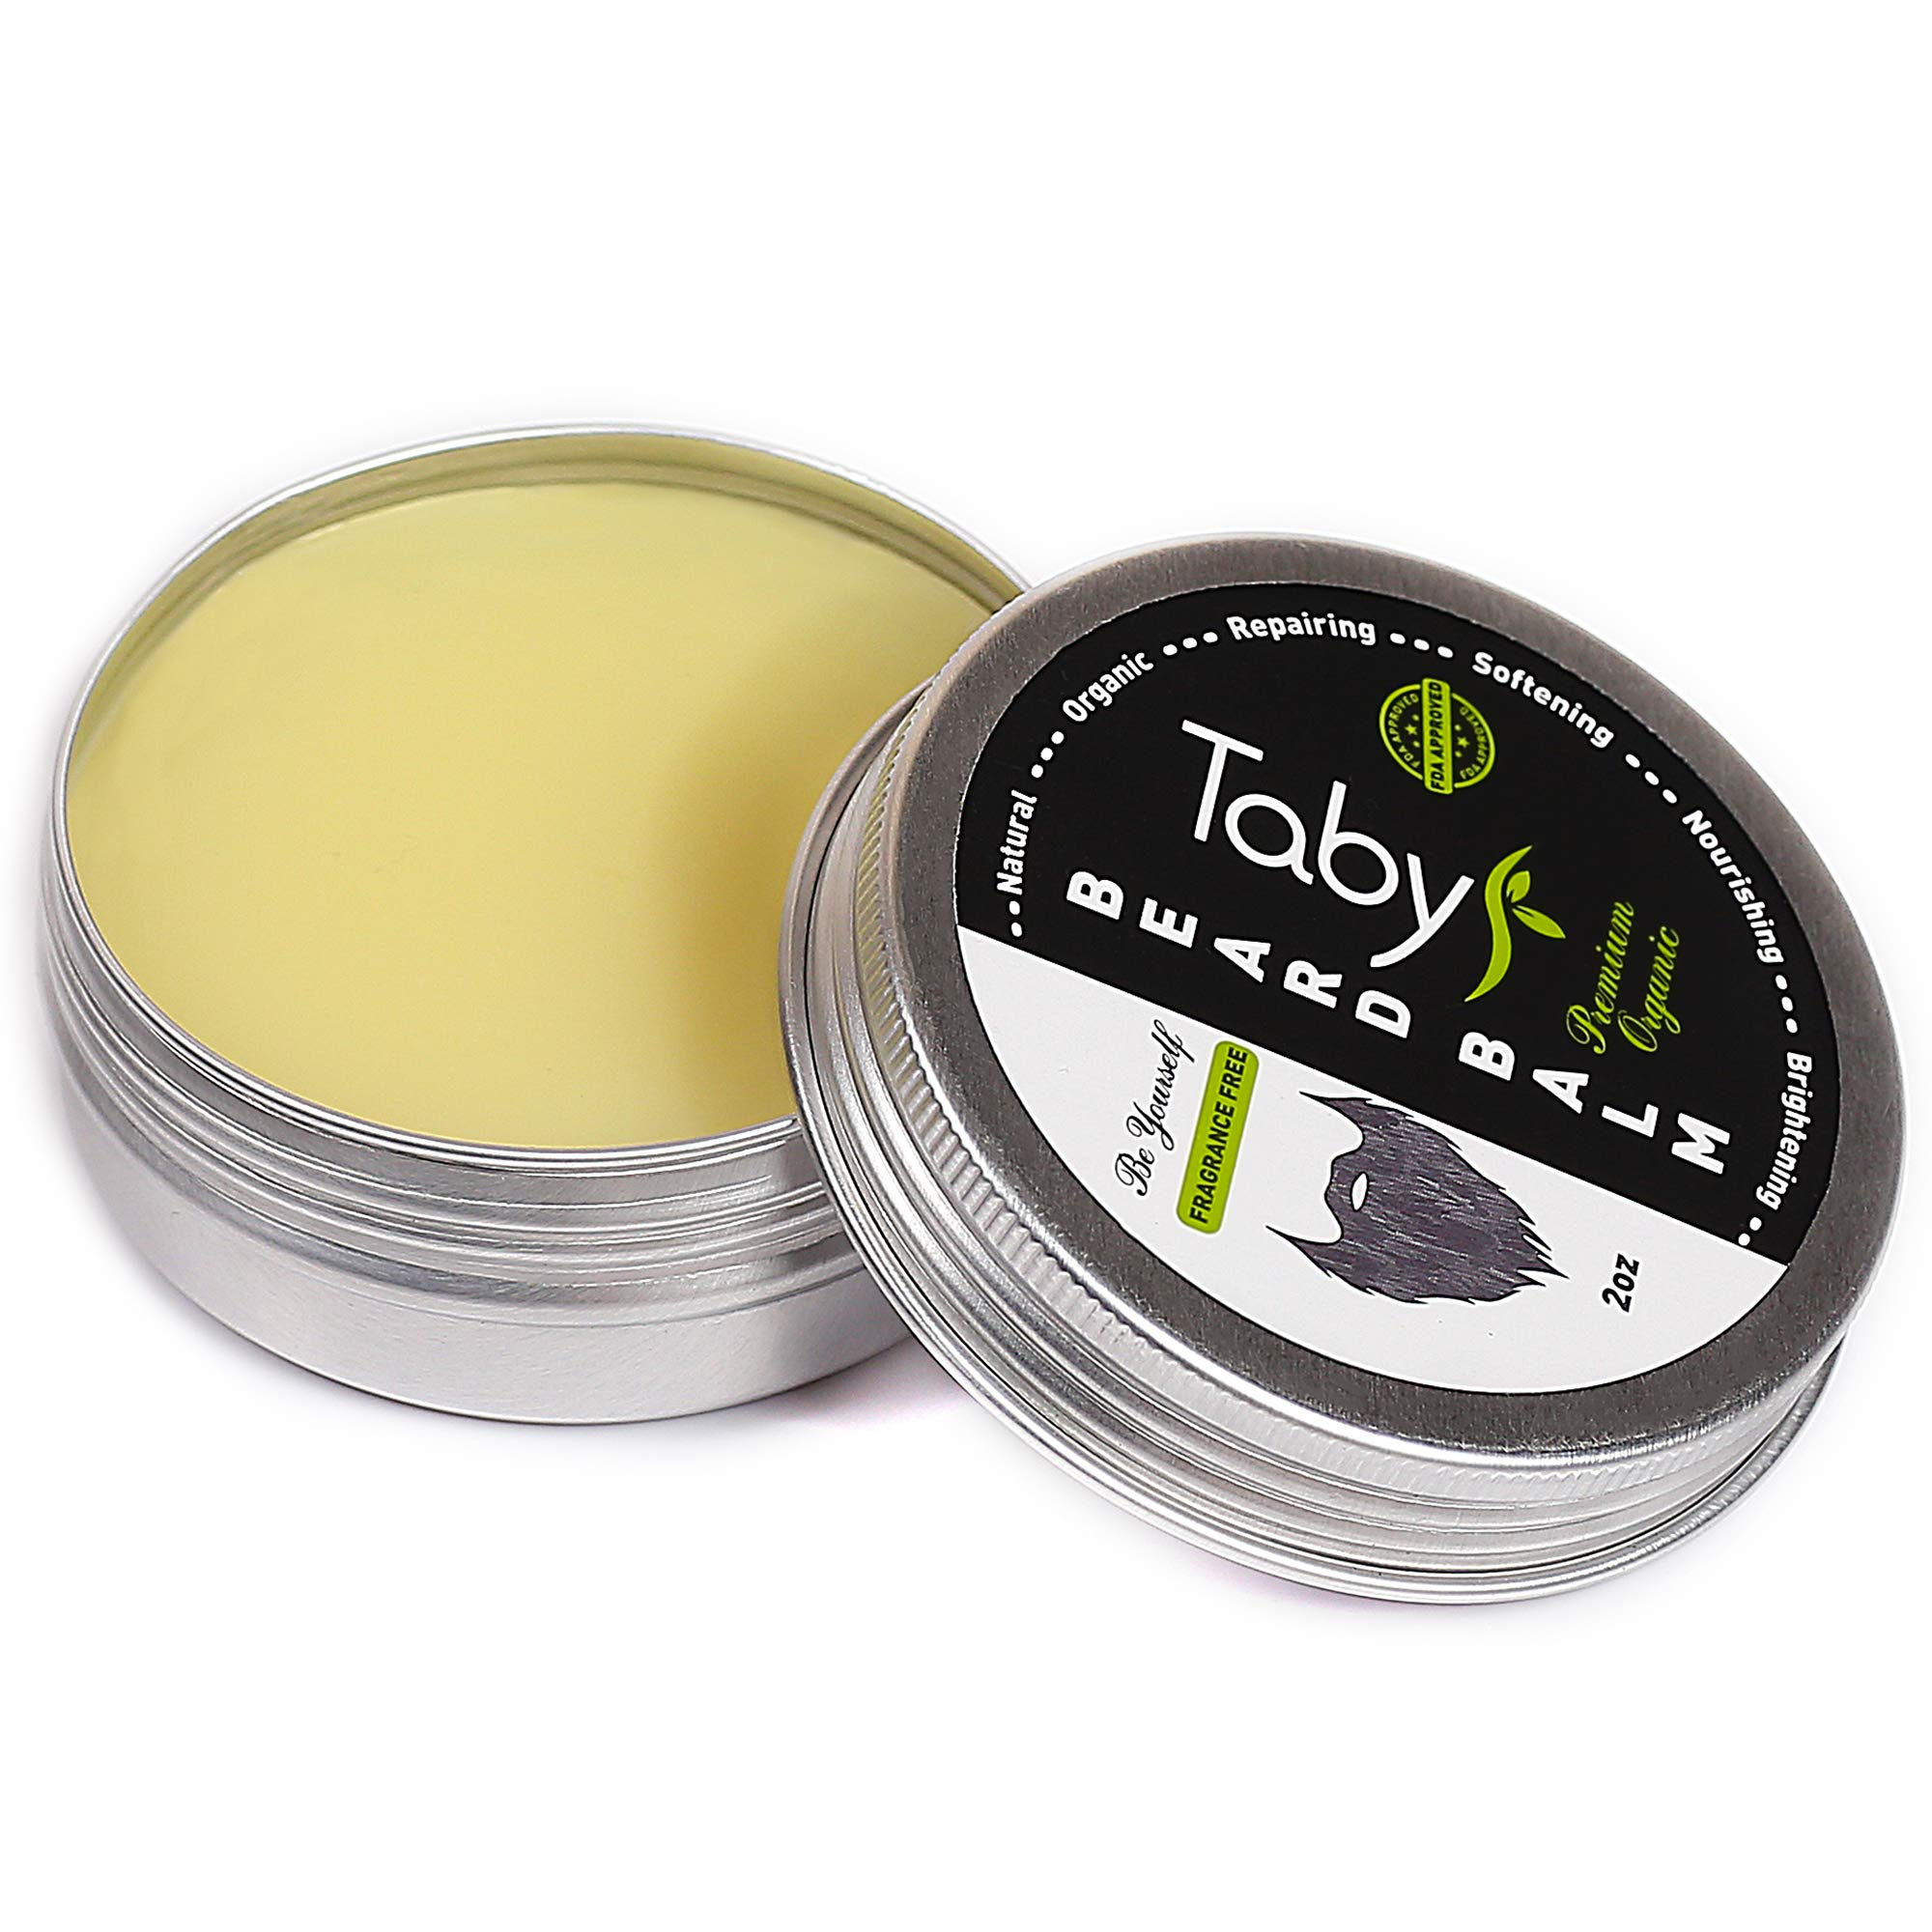 Great Beard Balm, With a Light Scent of Eucalyptus